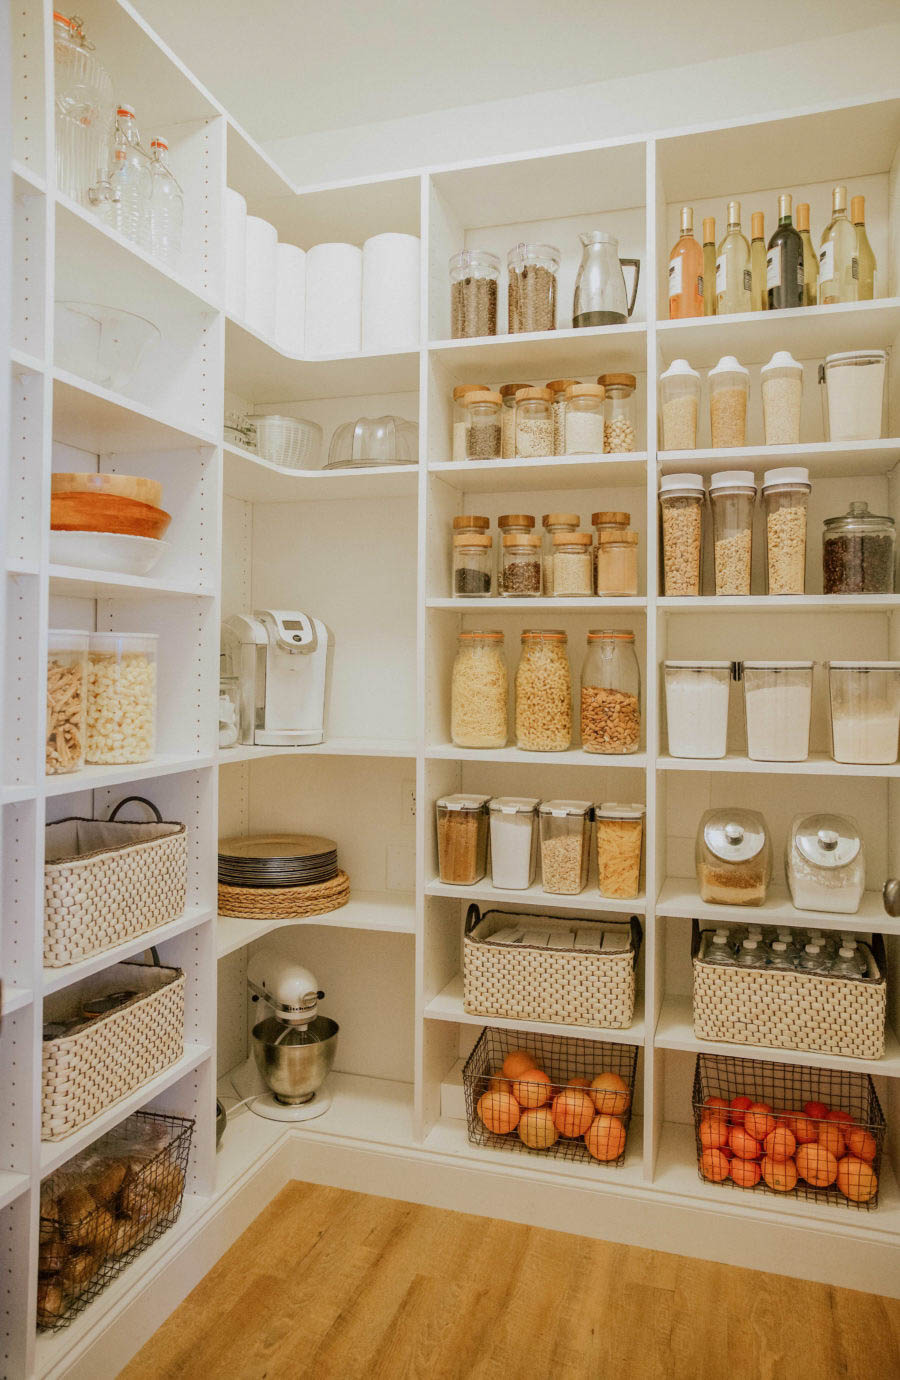 Pantry design project from start to finish + total cost ...